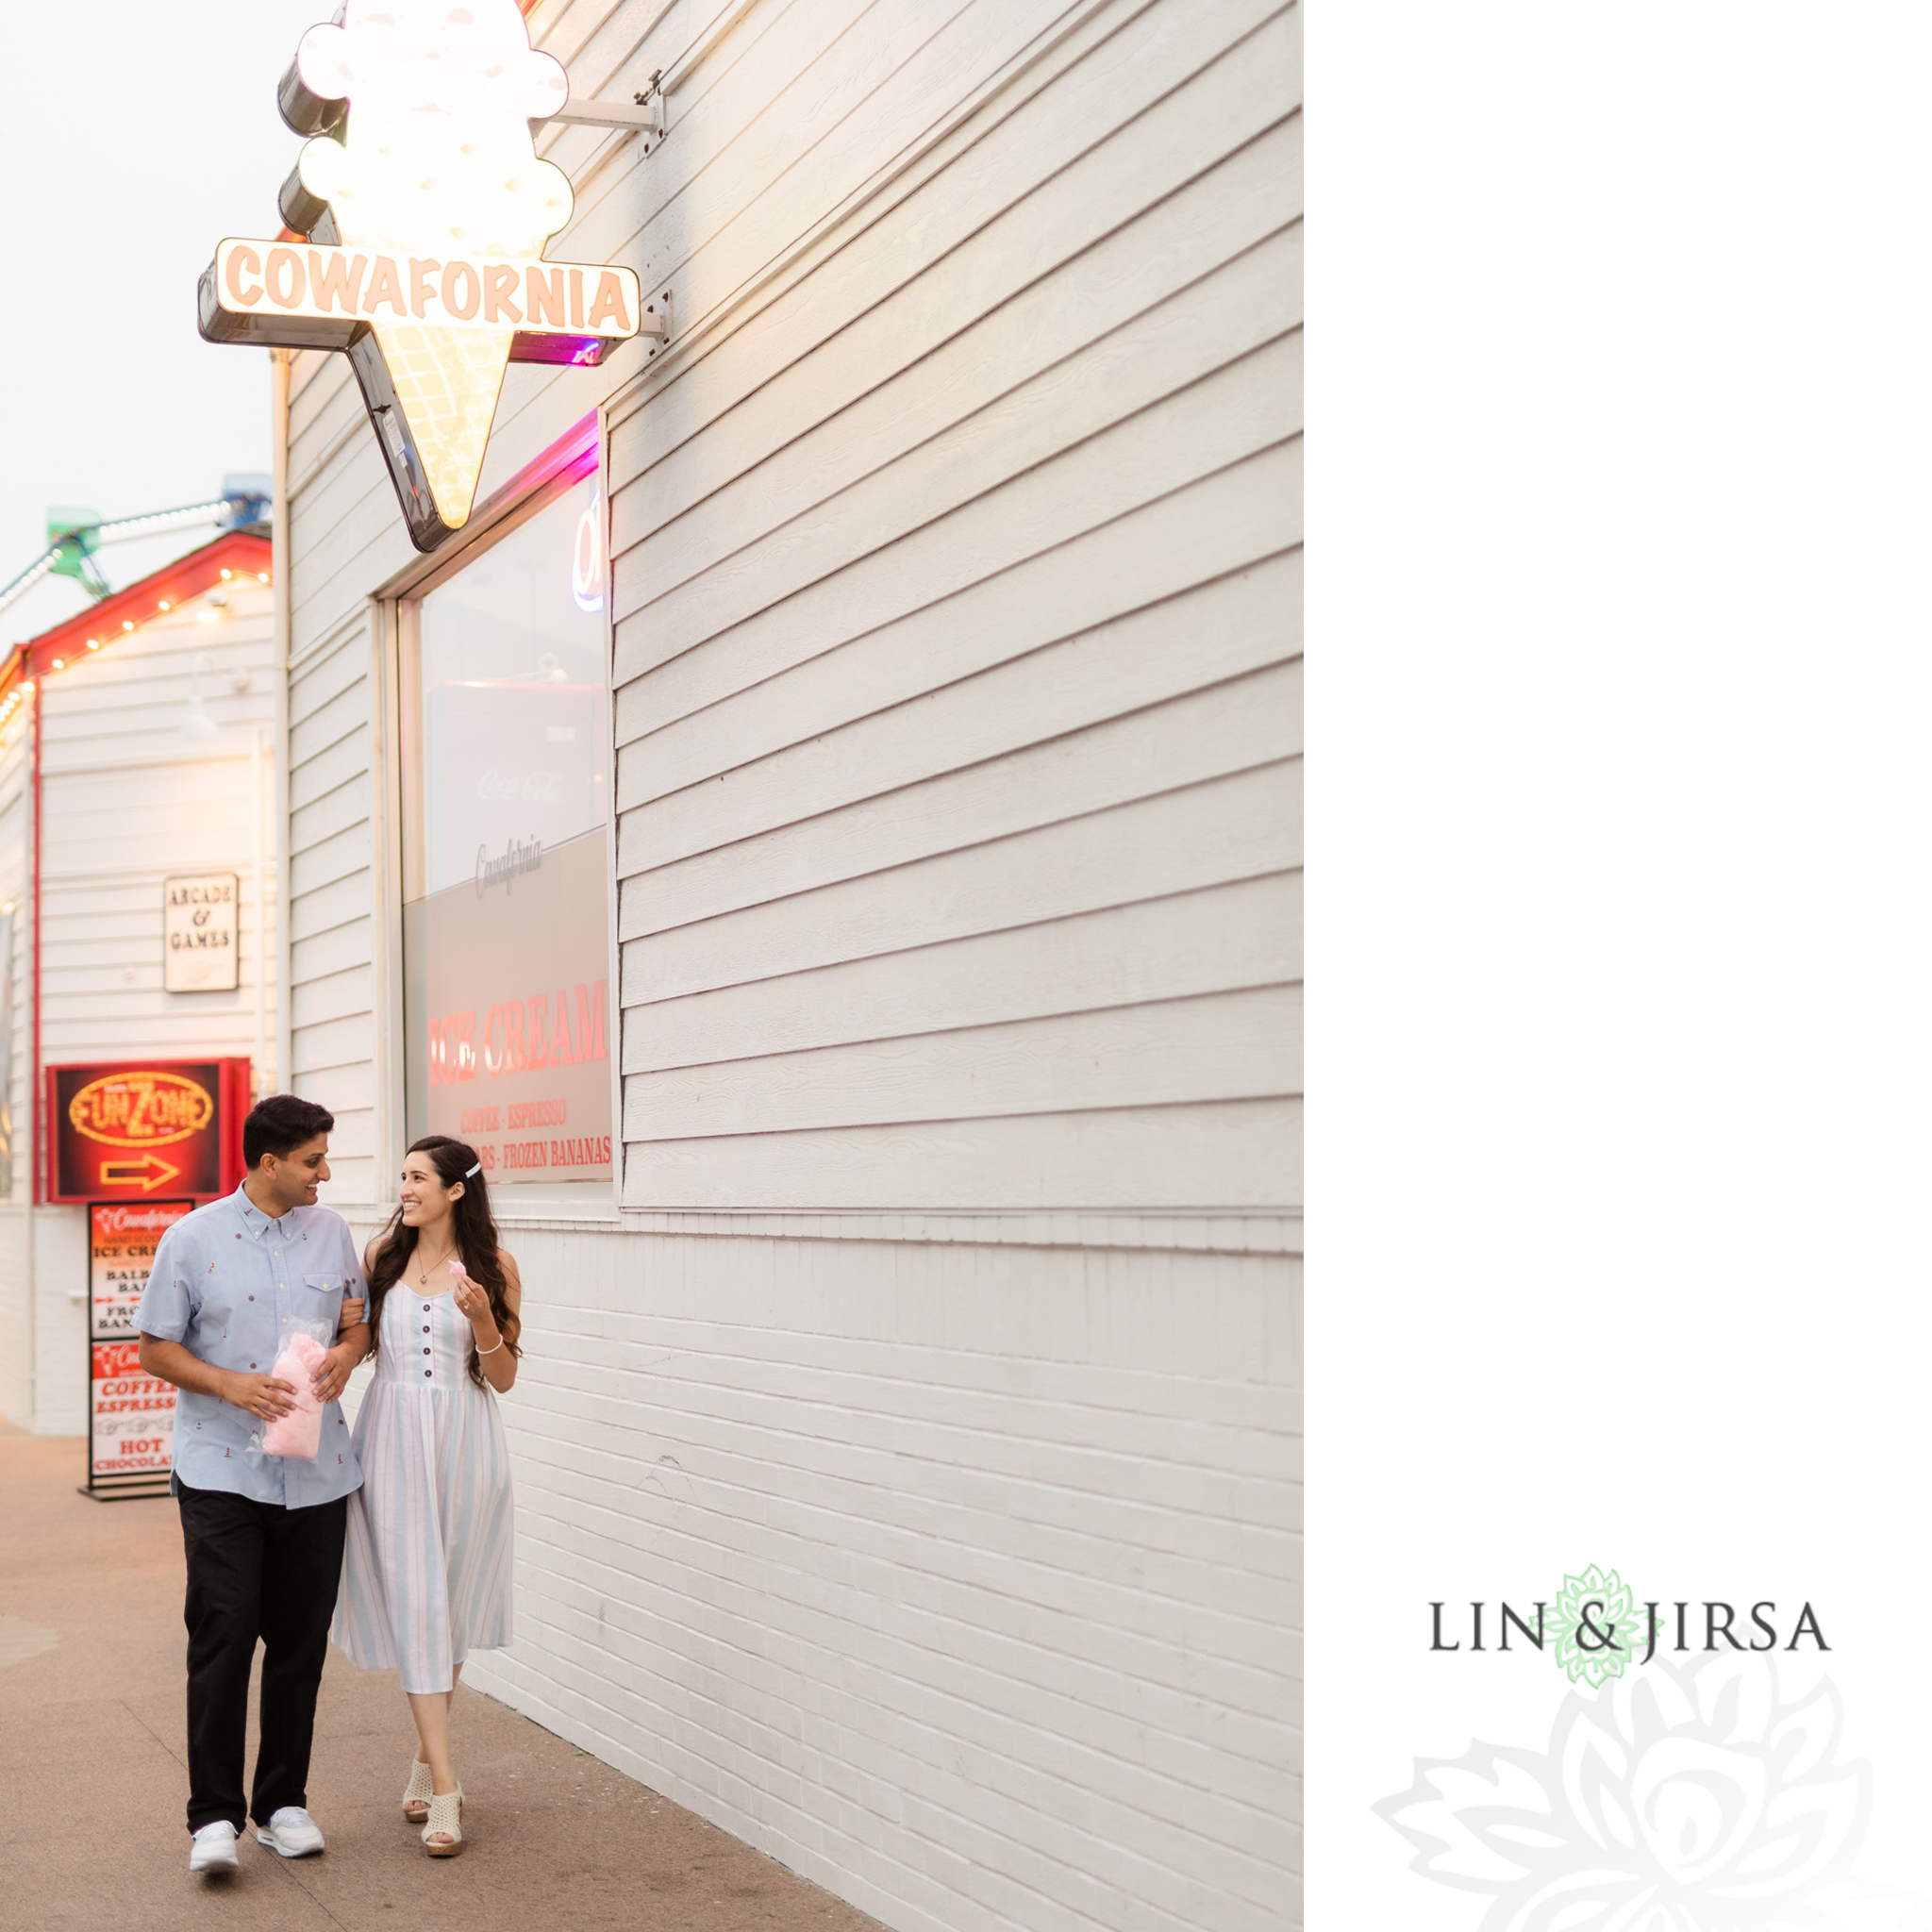 14 Balboa Fun Zone Orange County Engagement Photography